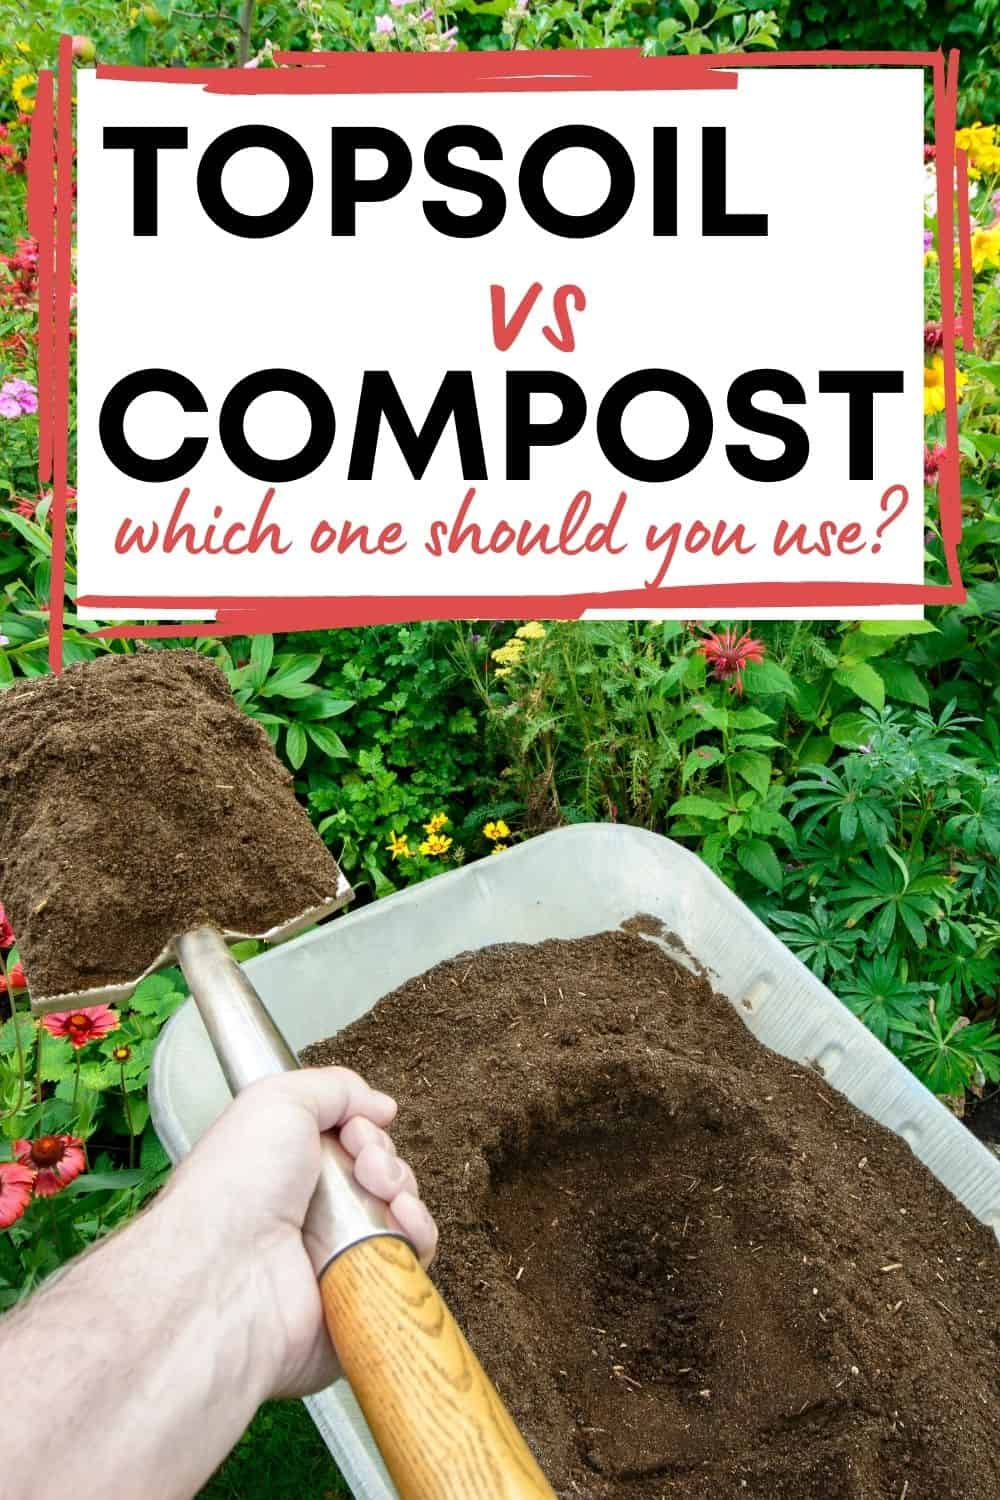 Topsoil vs compost: which one should you use?